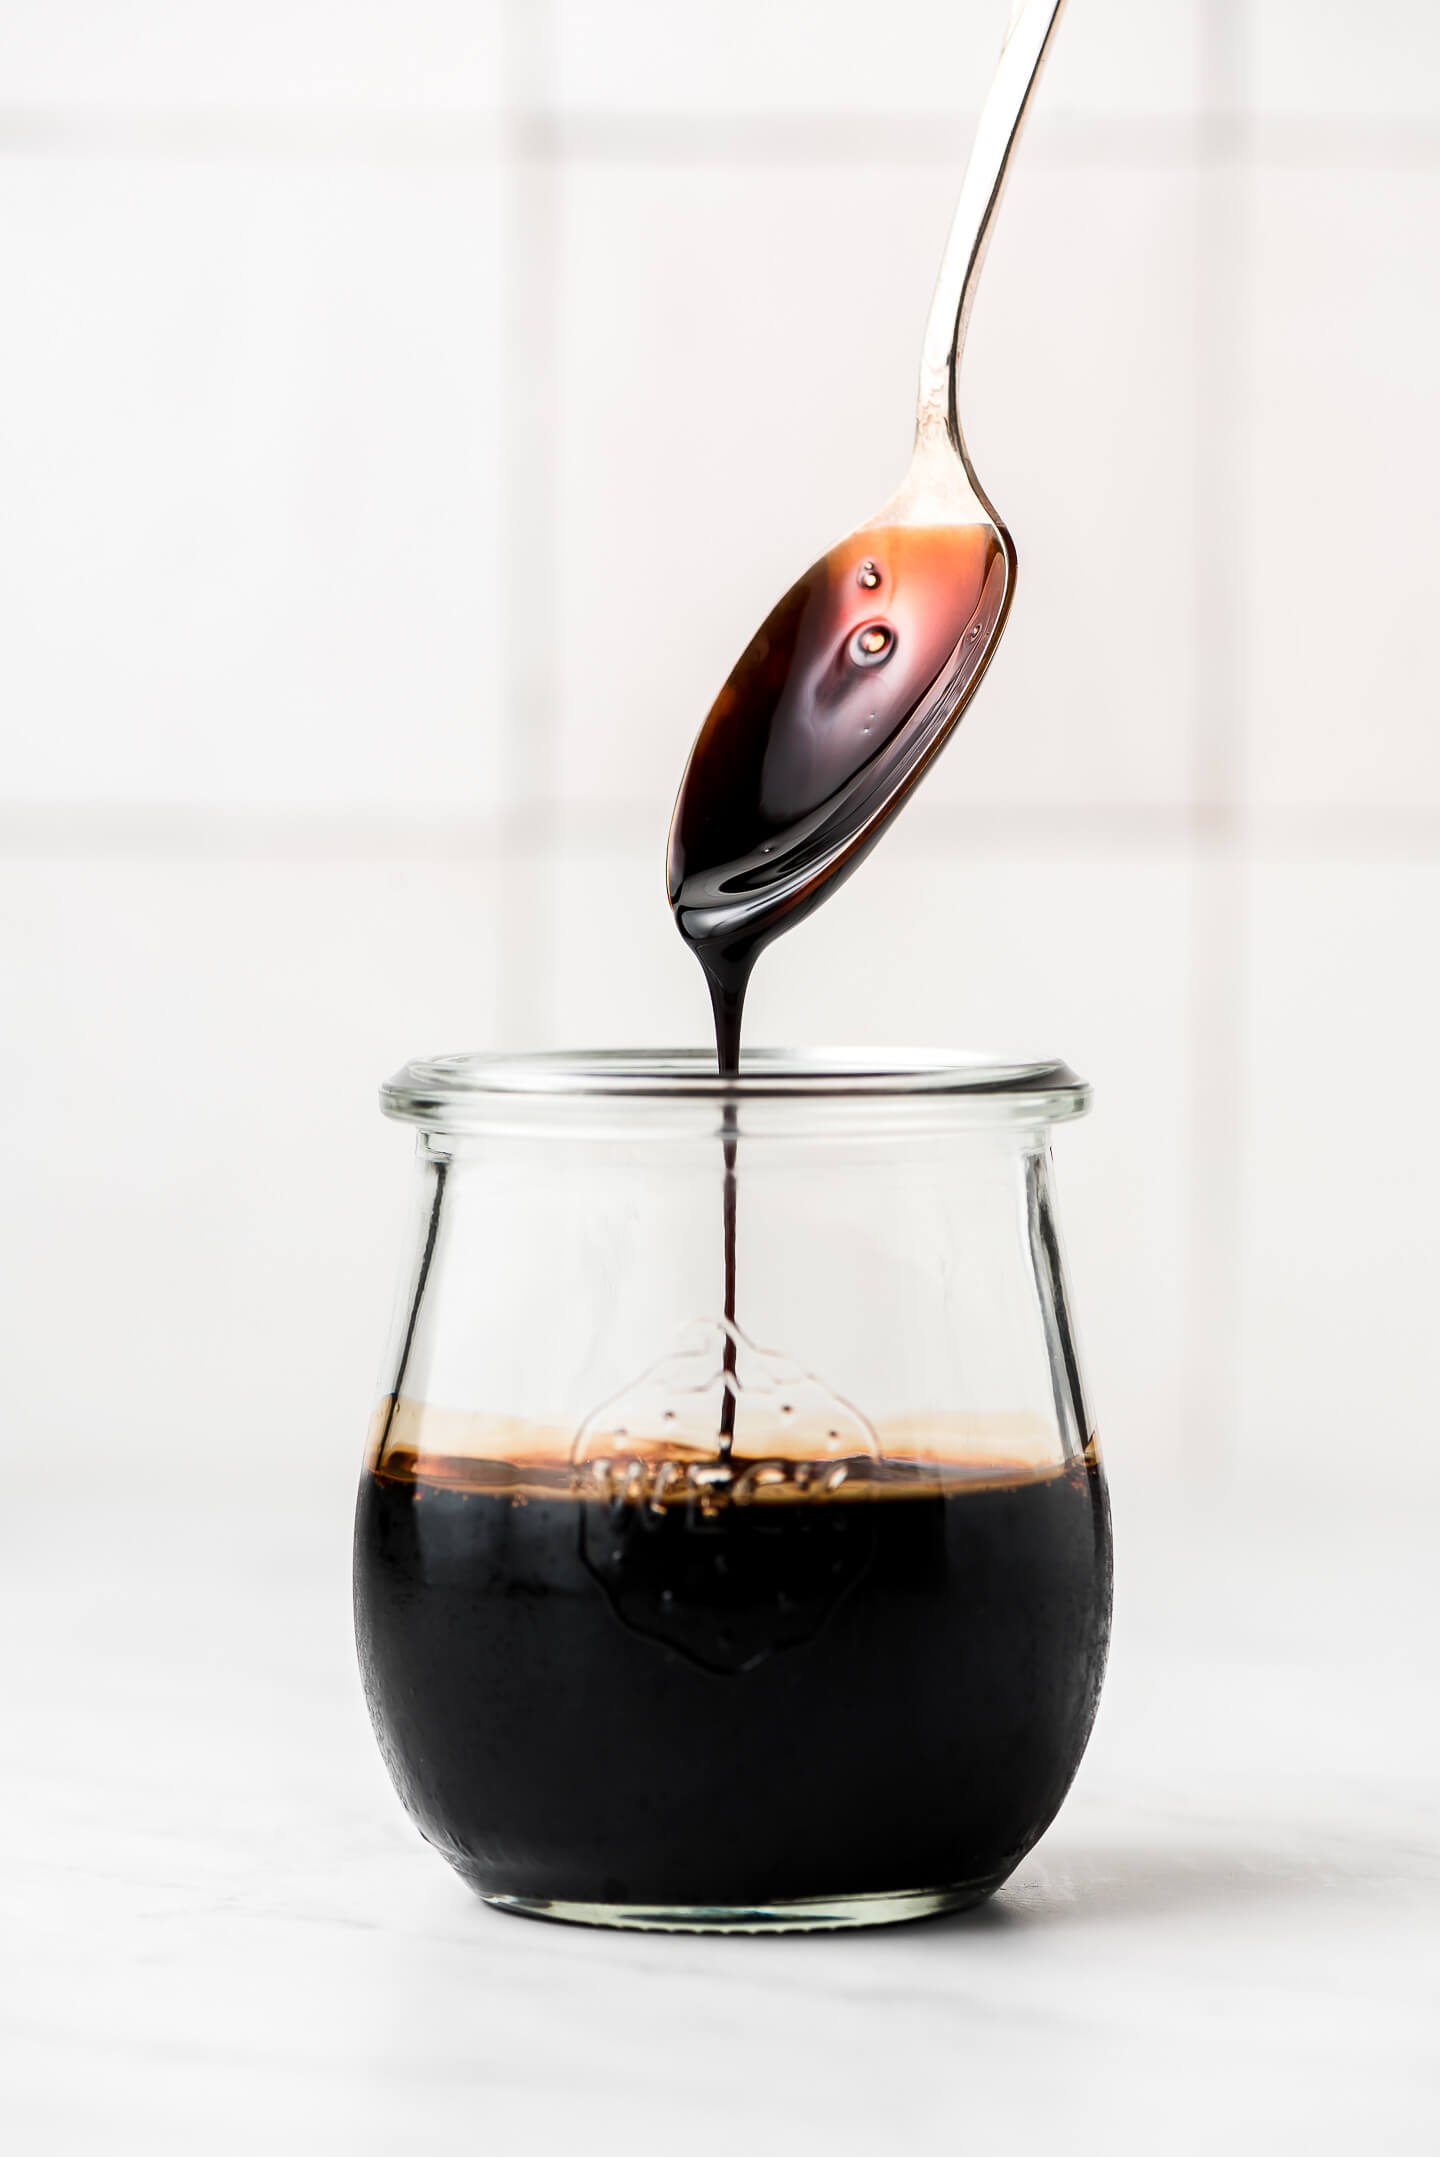 Lifting a spoon out of a jar and letting Balsamic Glaze drip back down into it.